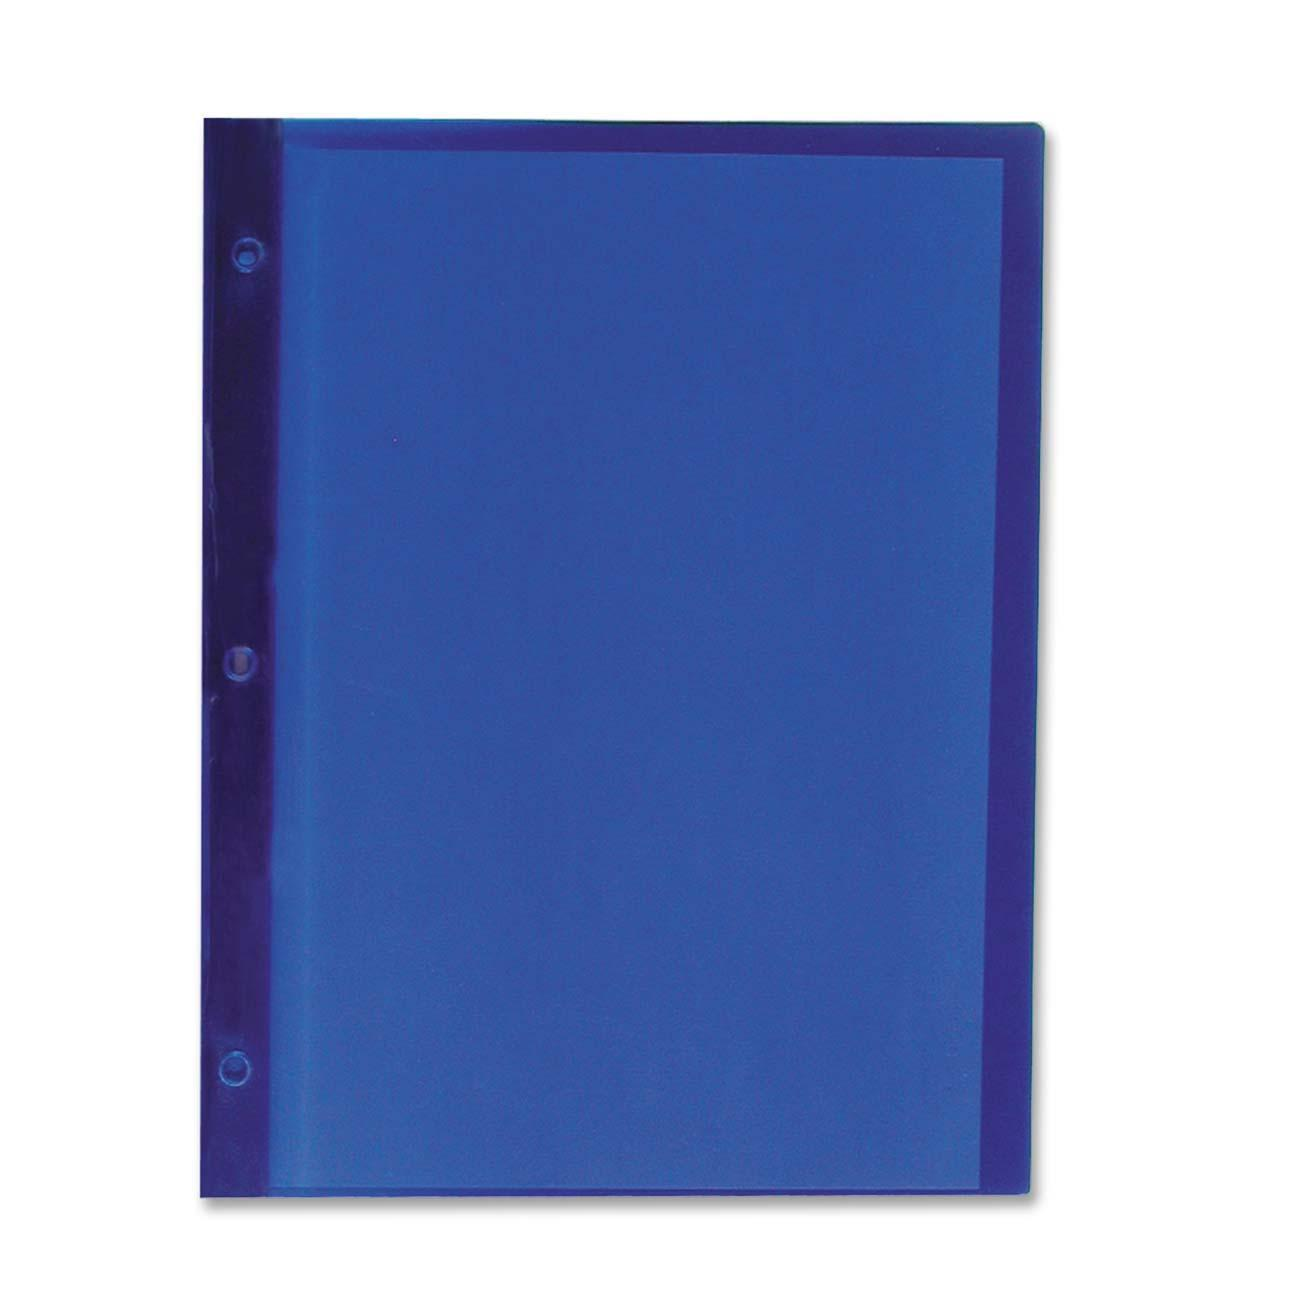 Winnable Translucent Blue Report Cover - Each